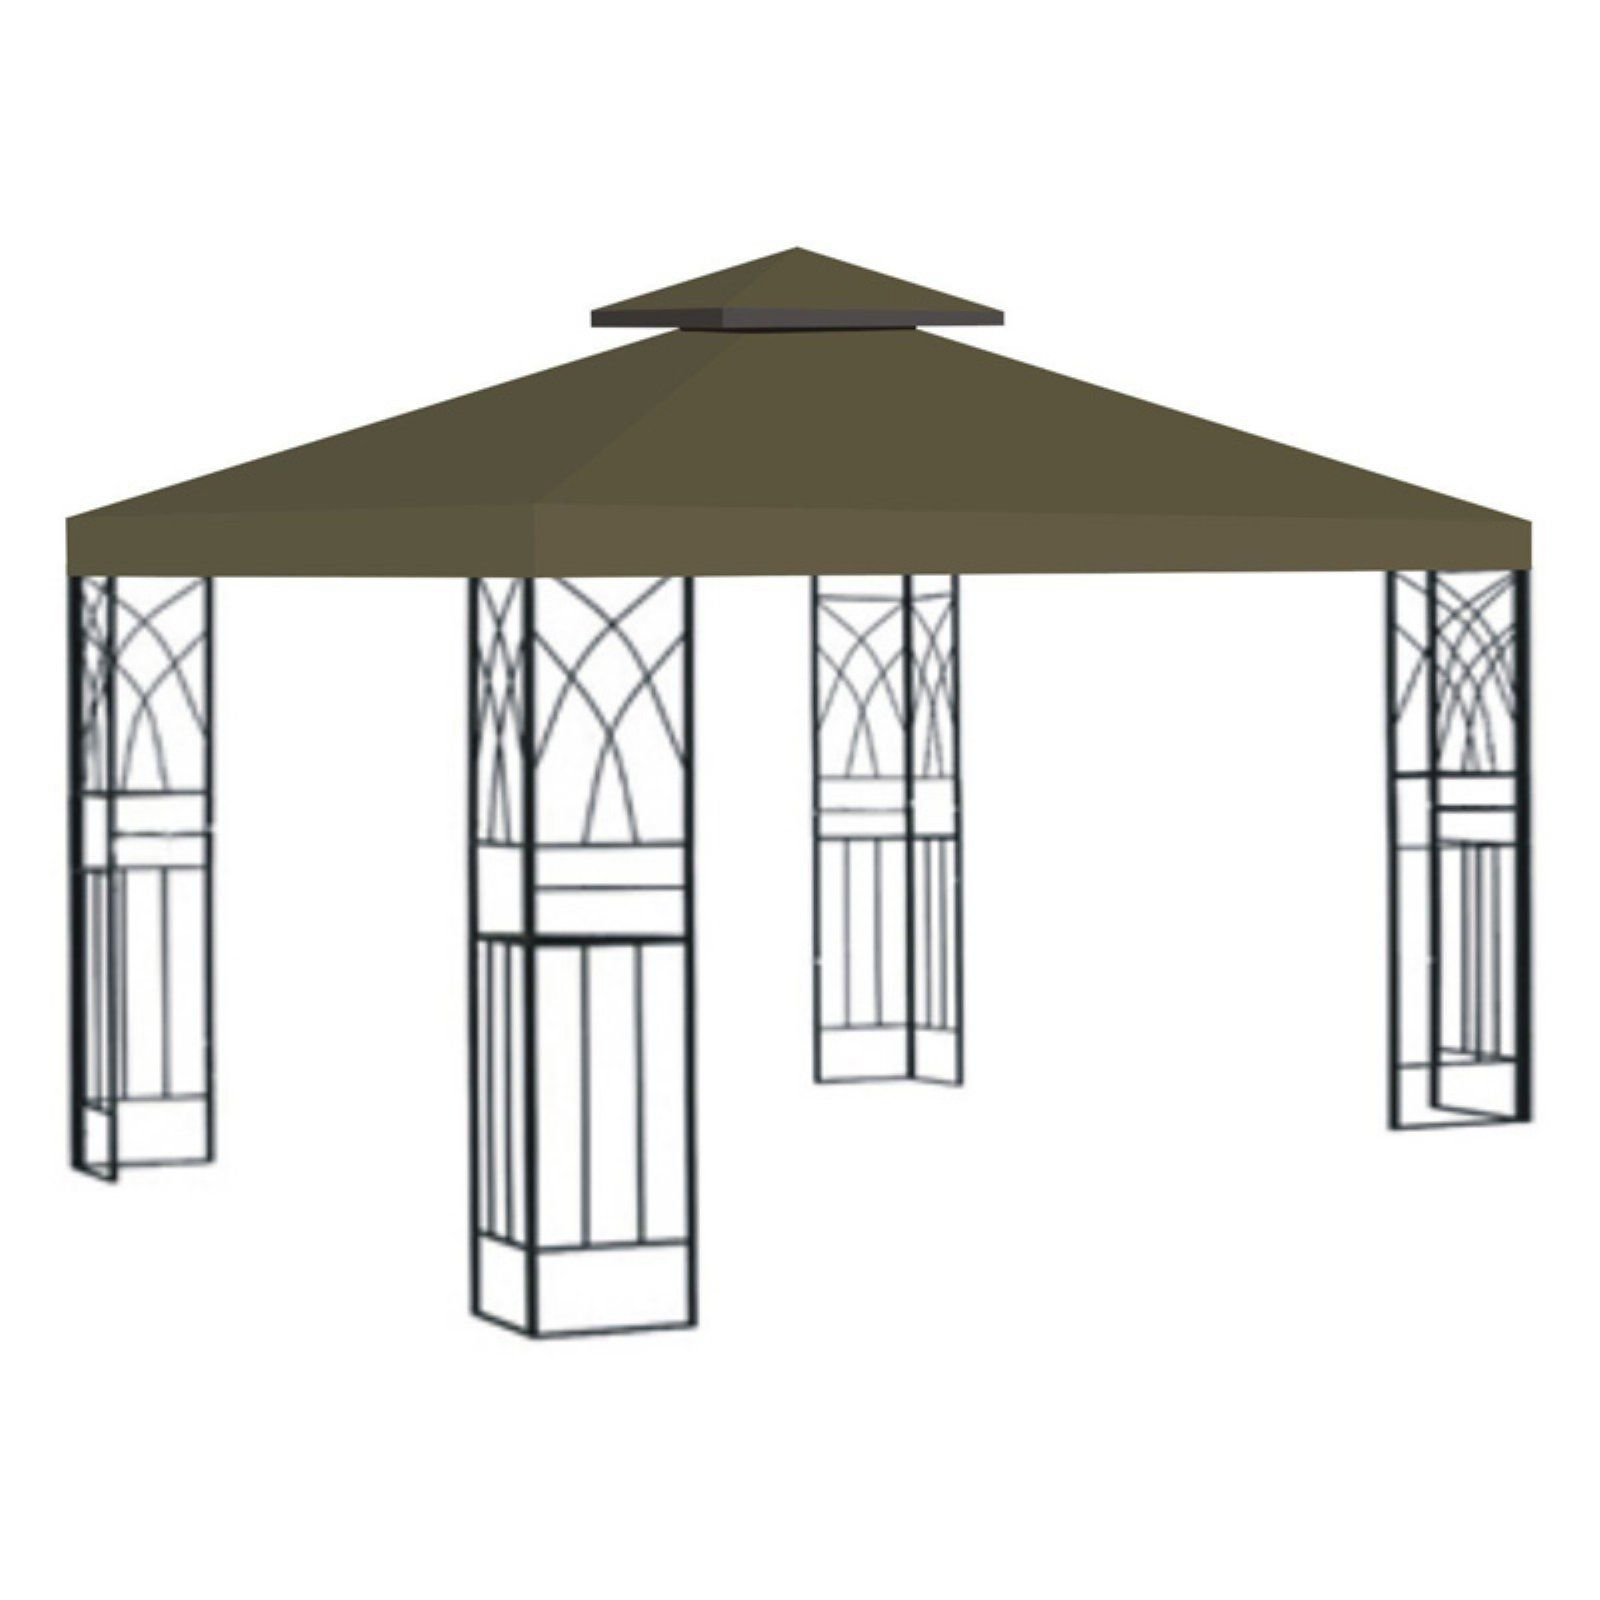 Sunrise 10 X 10 Ft Gazebo Replacement Double Tier Canopy Cover Gazebo Replacement Canopy Gazebo